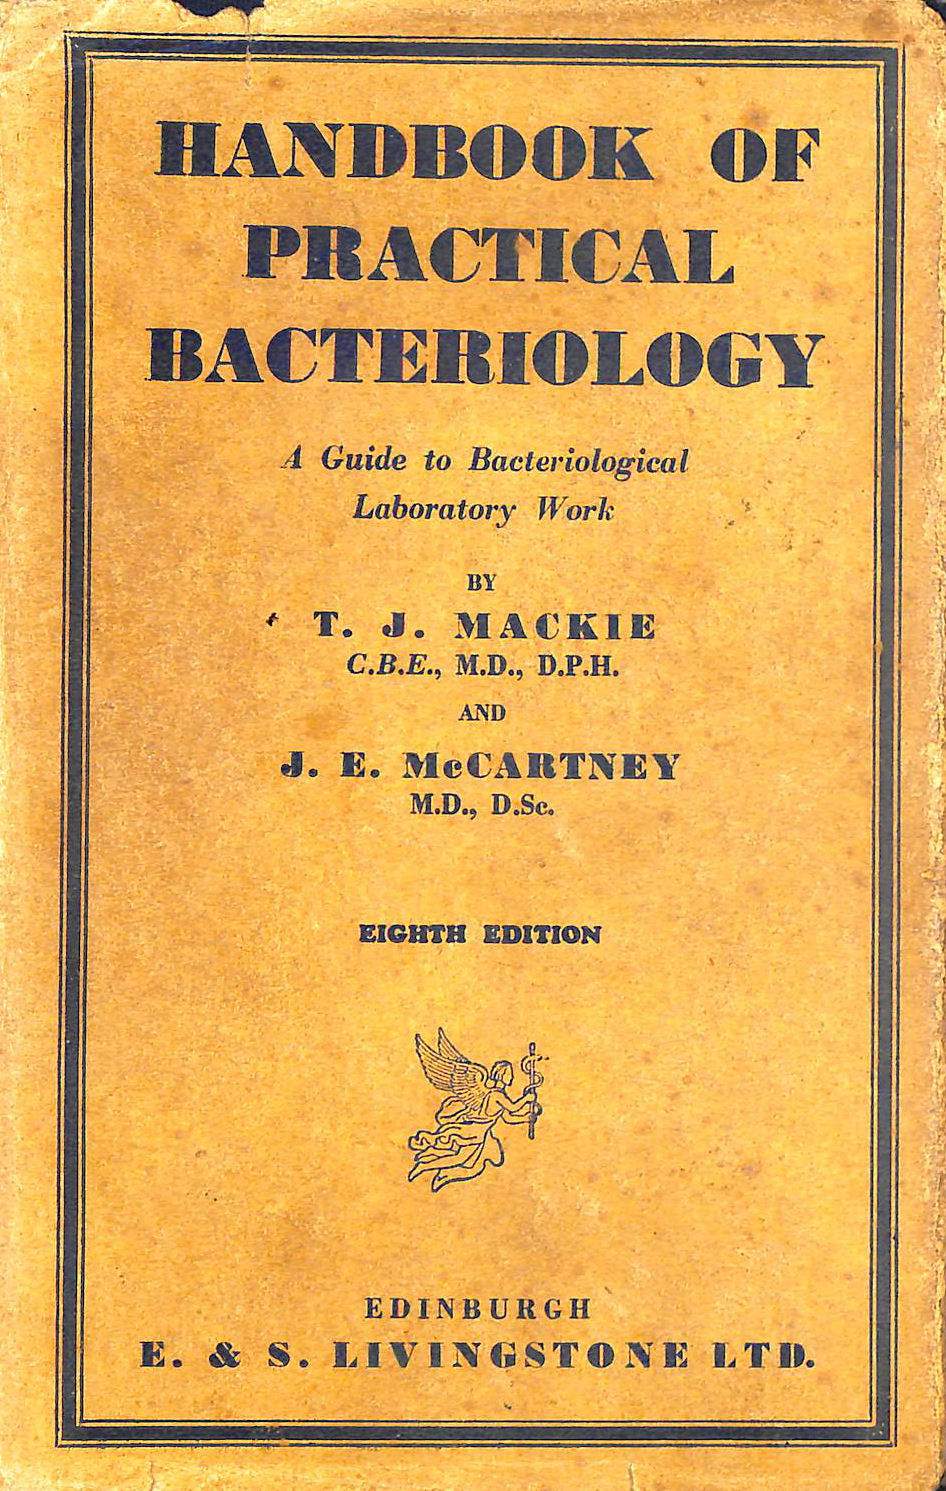 Image for Handbook of Practical Bacteriology